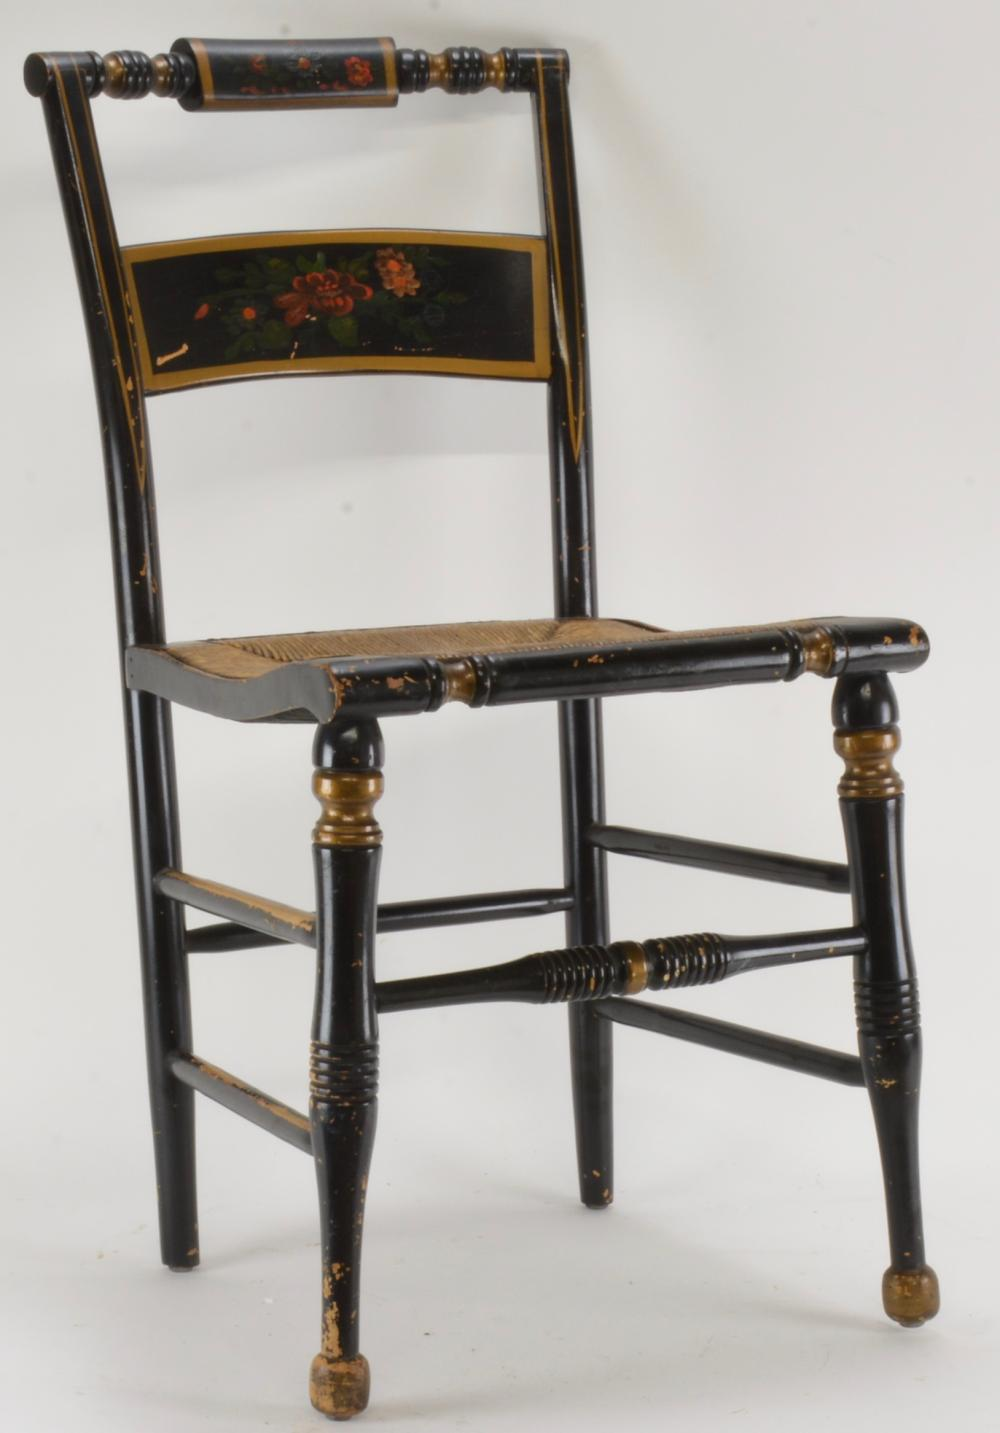 High Point Bending & Chair Co. Siler City N.C. Hitchcock Chair